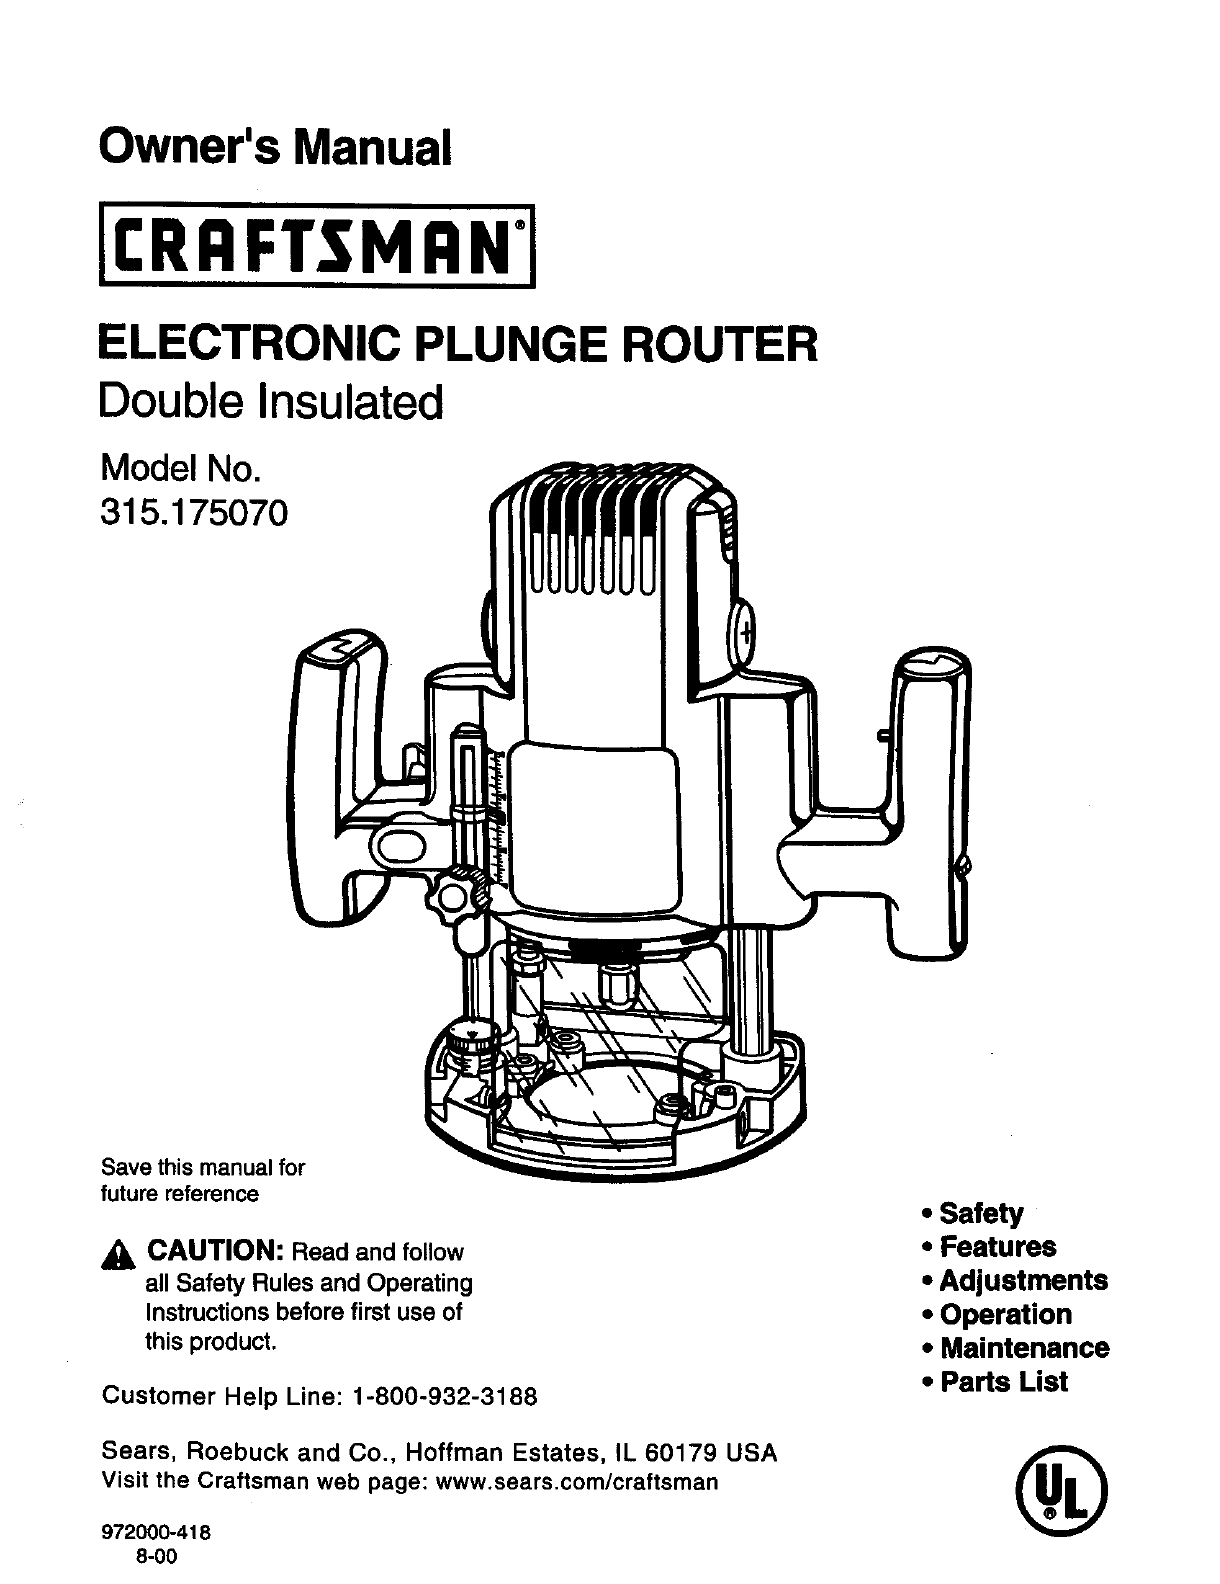 hight resolution of craftsman 315175070 user manual electronic plunge router manuals and guides l0090086